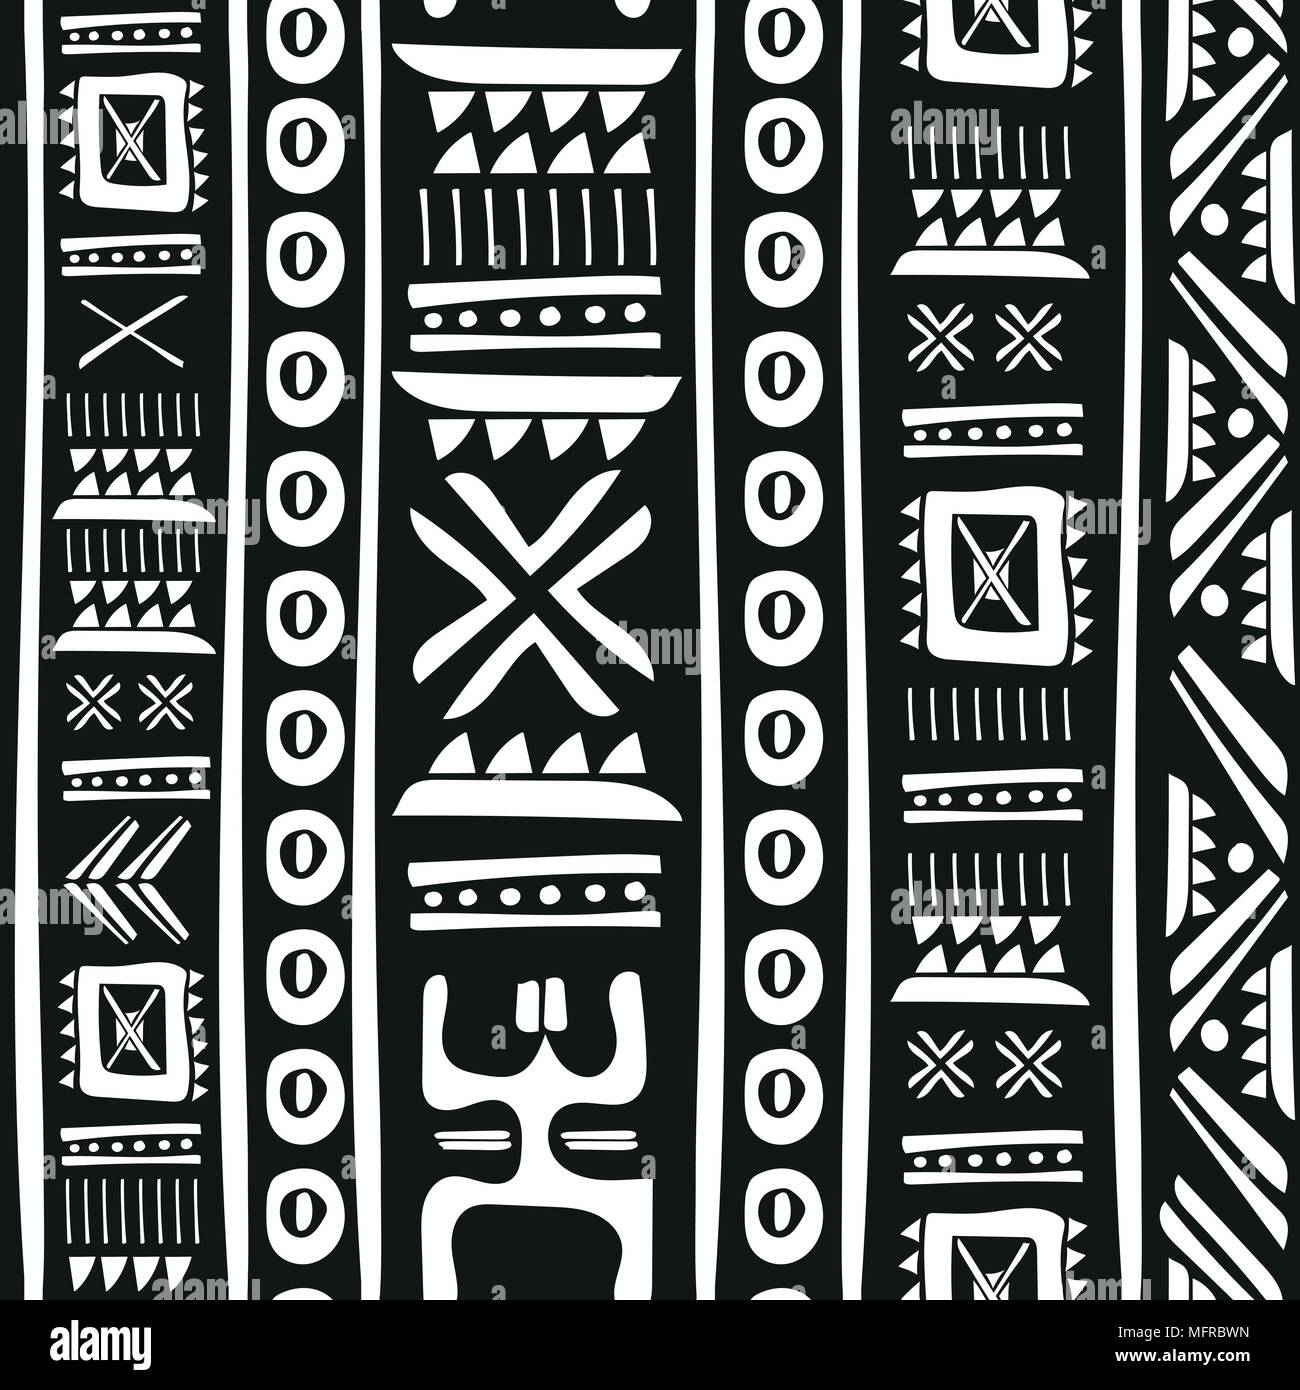 Black And White Tribal Doodle Vector Seamless Pattern Aztec